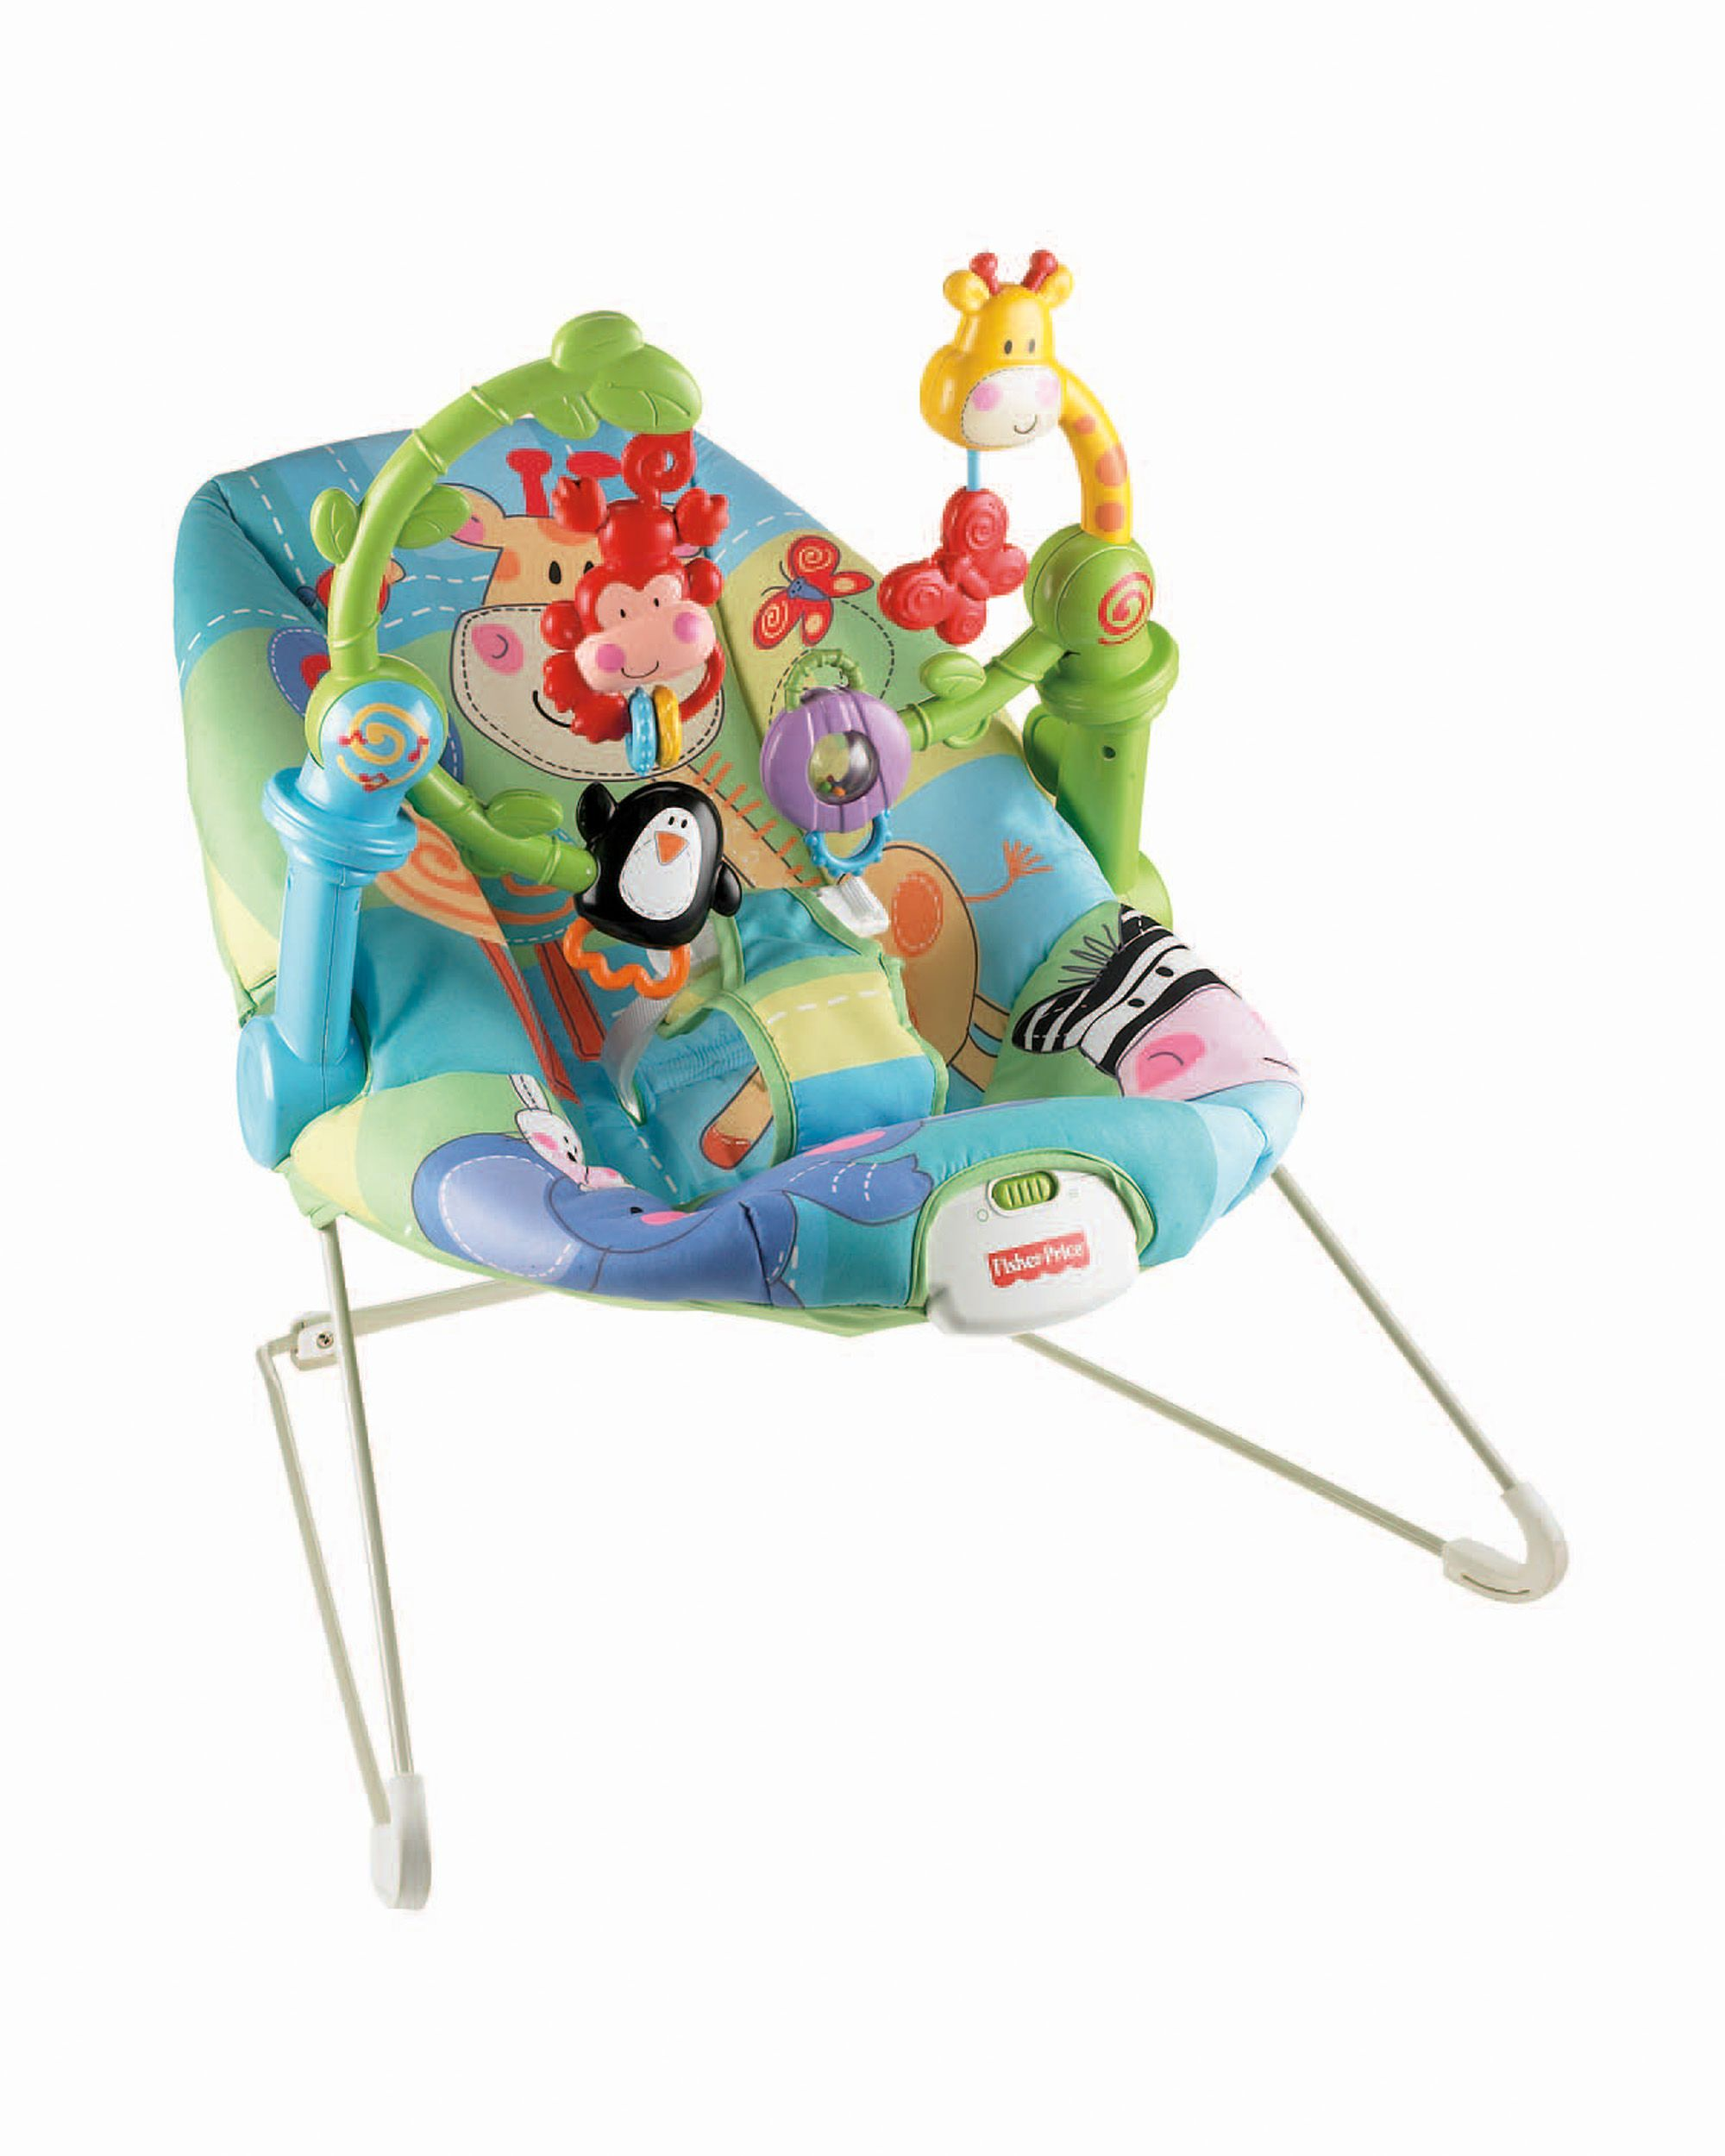 Baby rocker chair fisher price - Fisher Price Discover And Grow Bouncer Available Online At Http Www Babycity